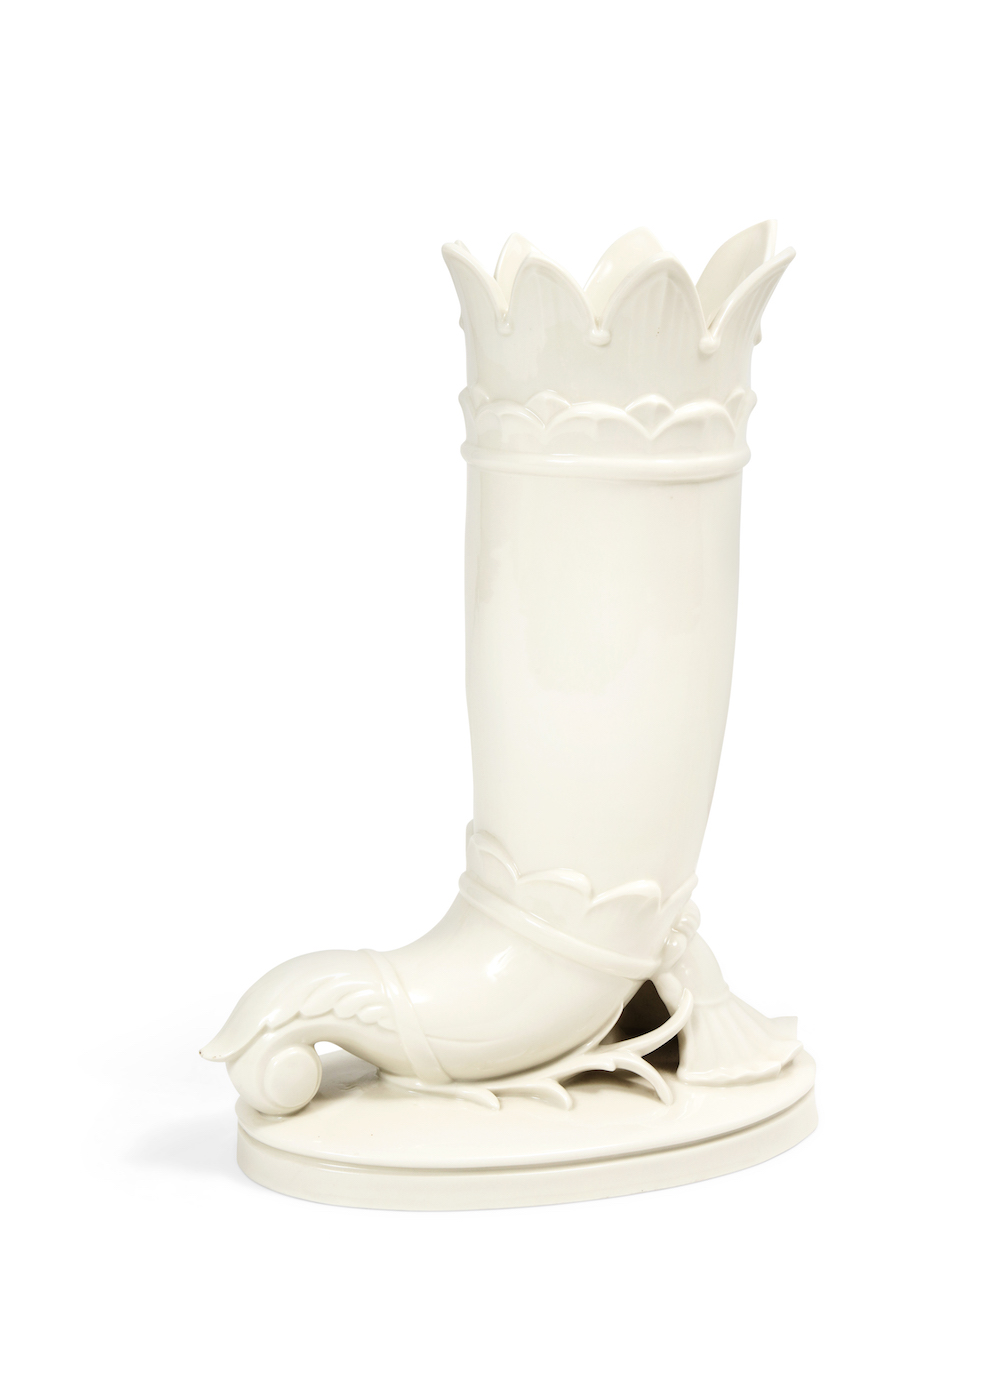 German Porcelain Horn 6R1A8598.jpg